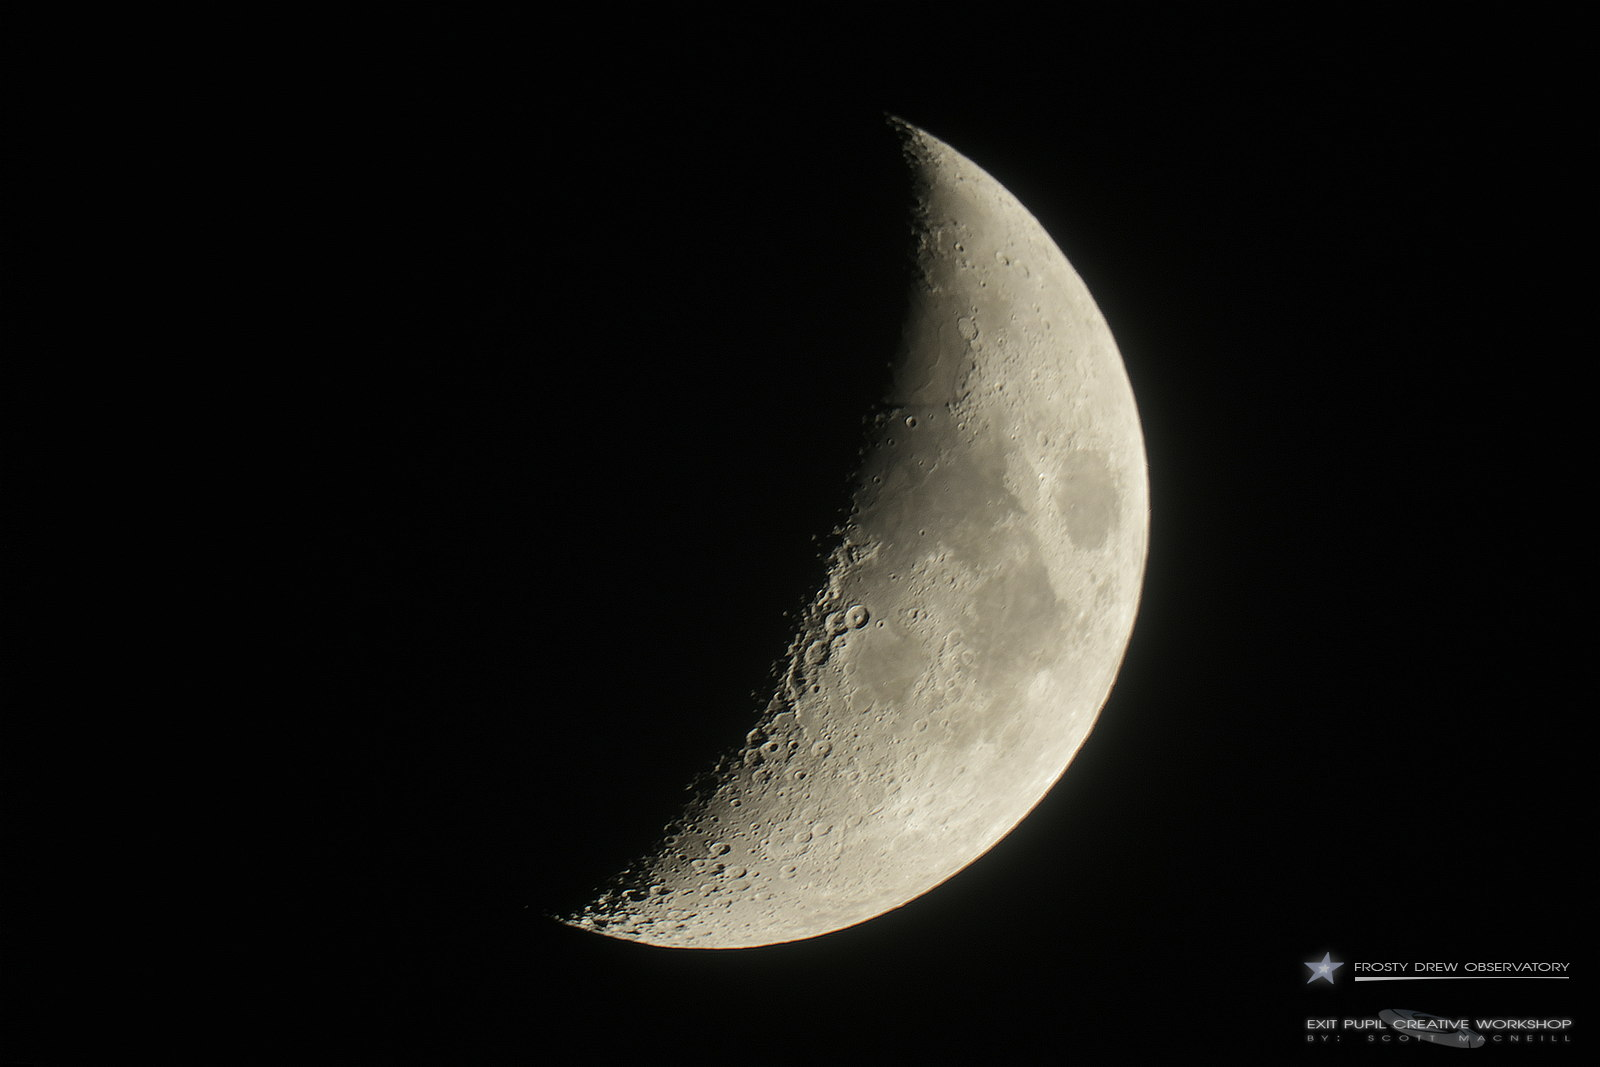 Sunday Night's Moon of Nov. 10, 2013